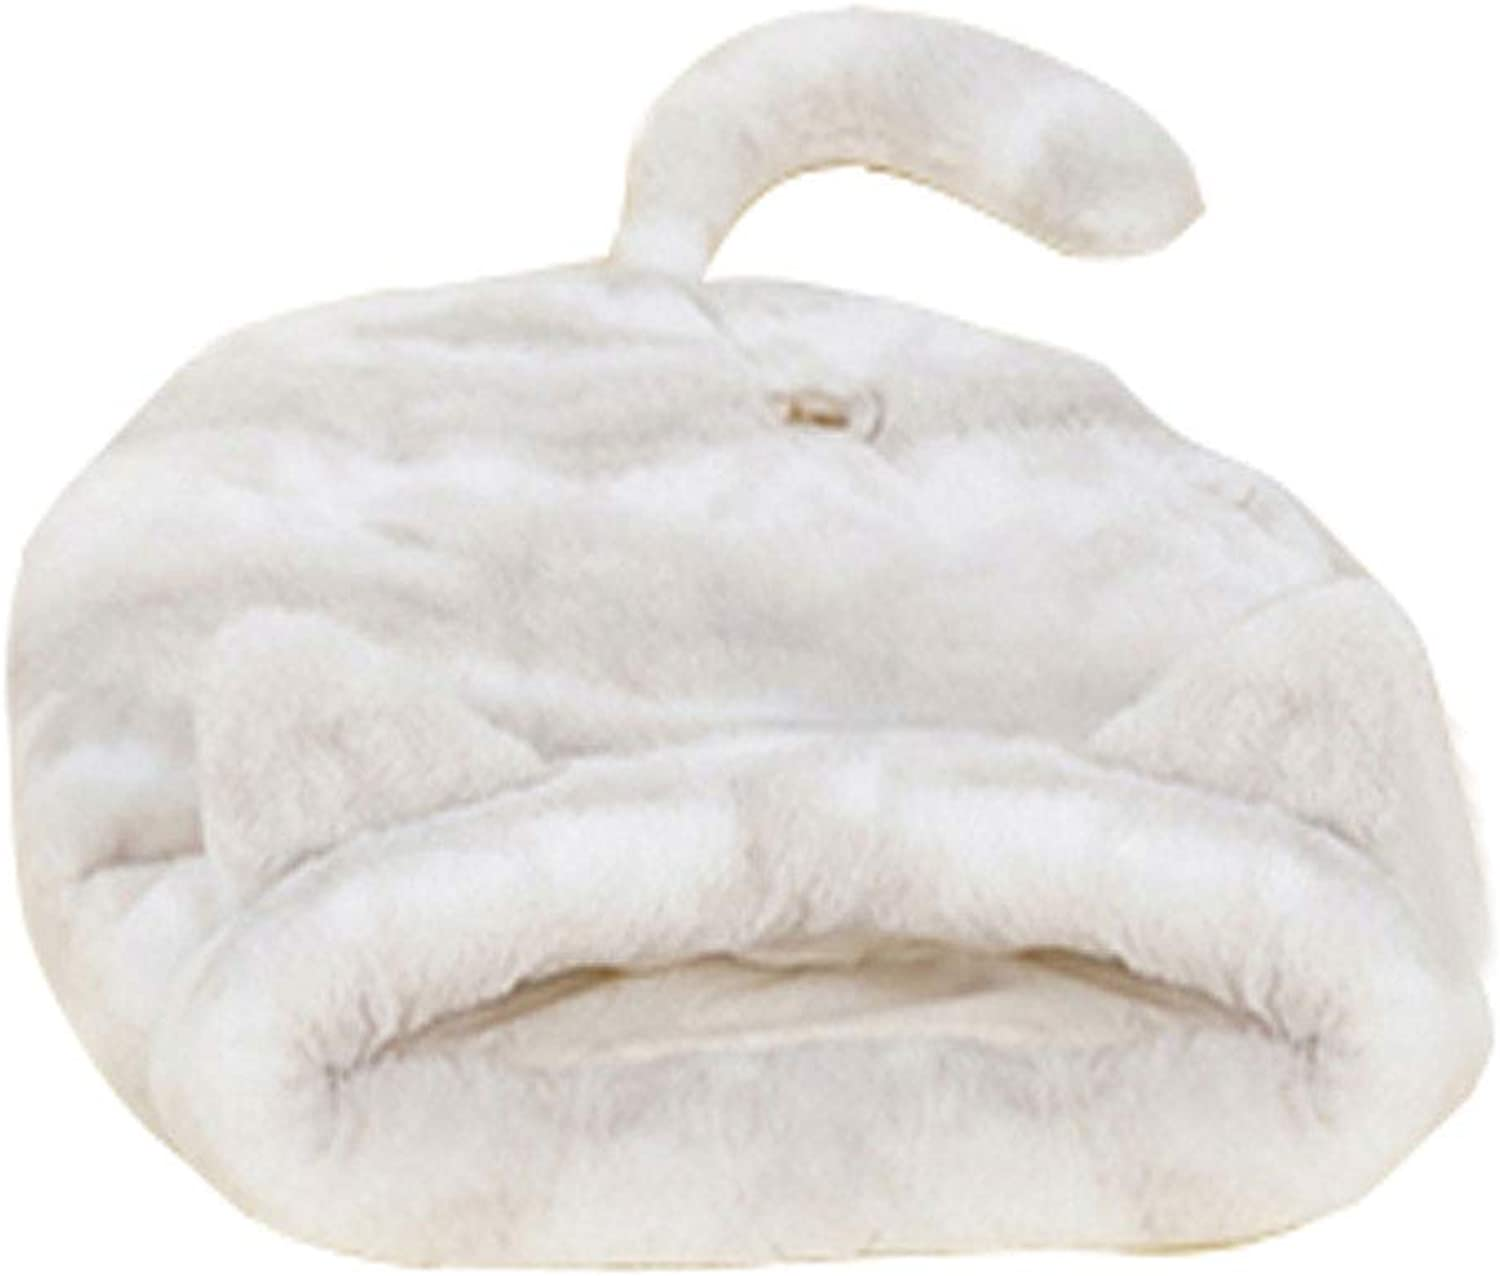 GCHOME dog bed Cat Bed,Washable Nonslip Dog Bed Cat Nest,Breathable Removable Plush Warm Cat Sleeping Bag, Indoor Small Pet Nest (color   White)